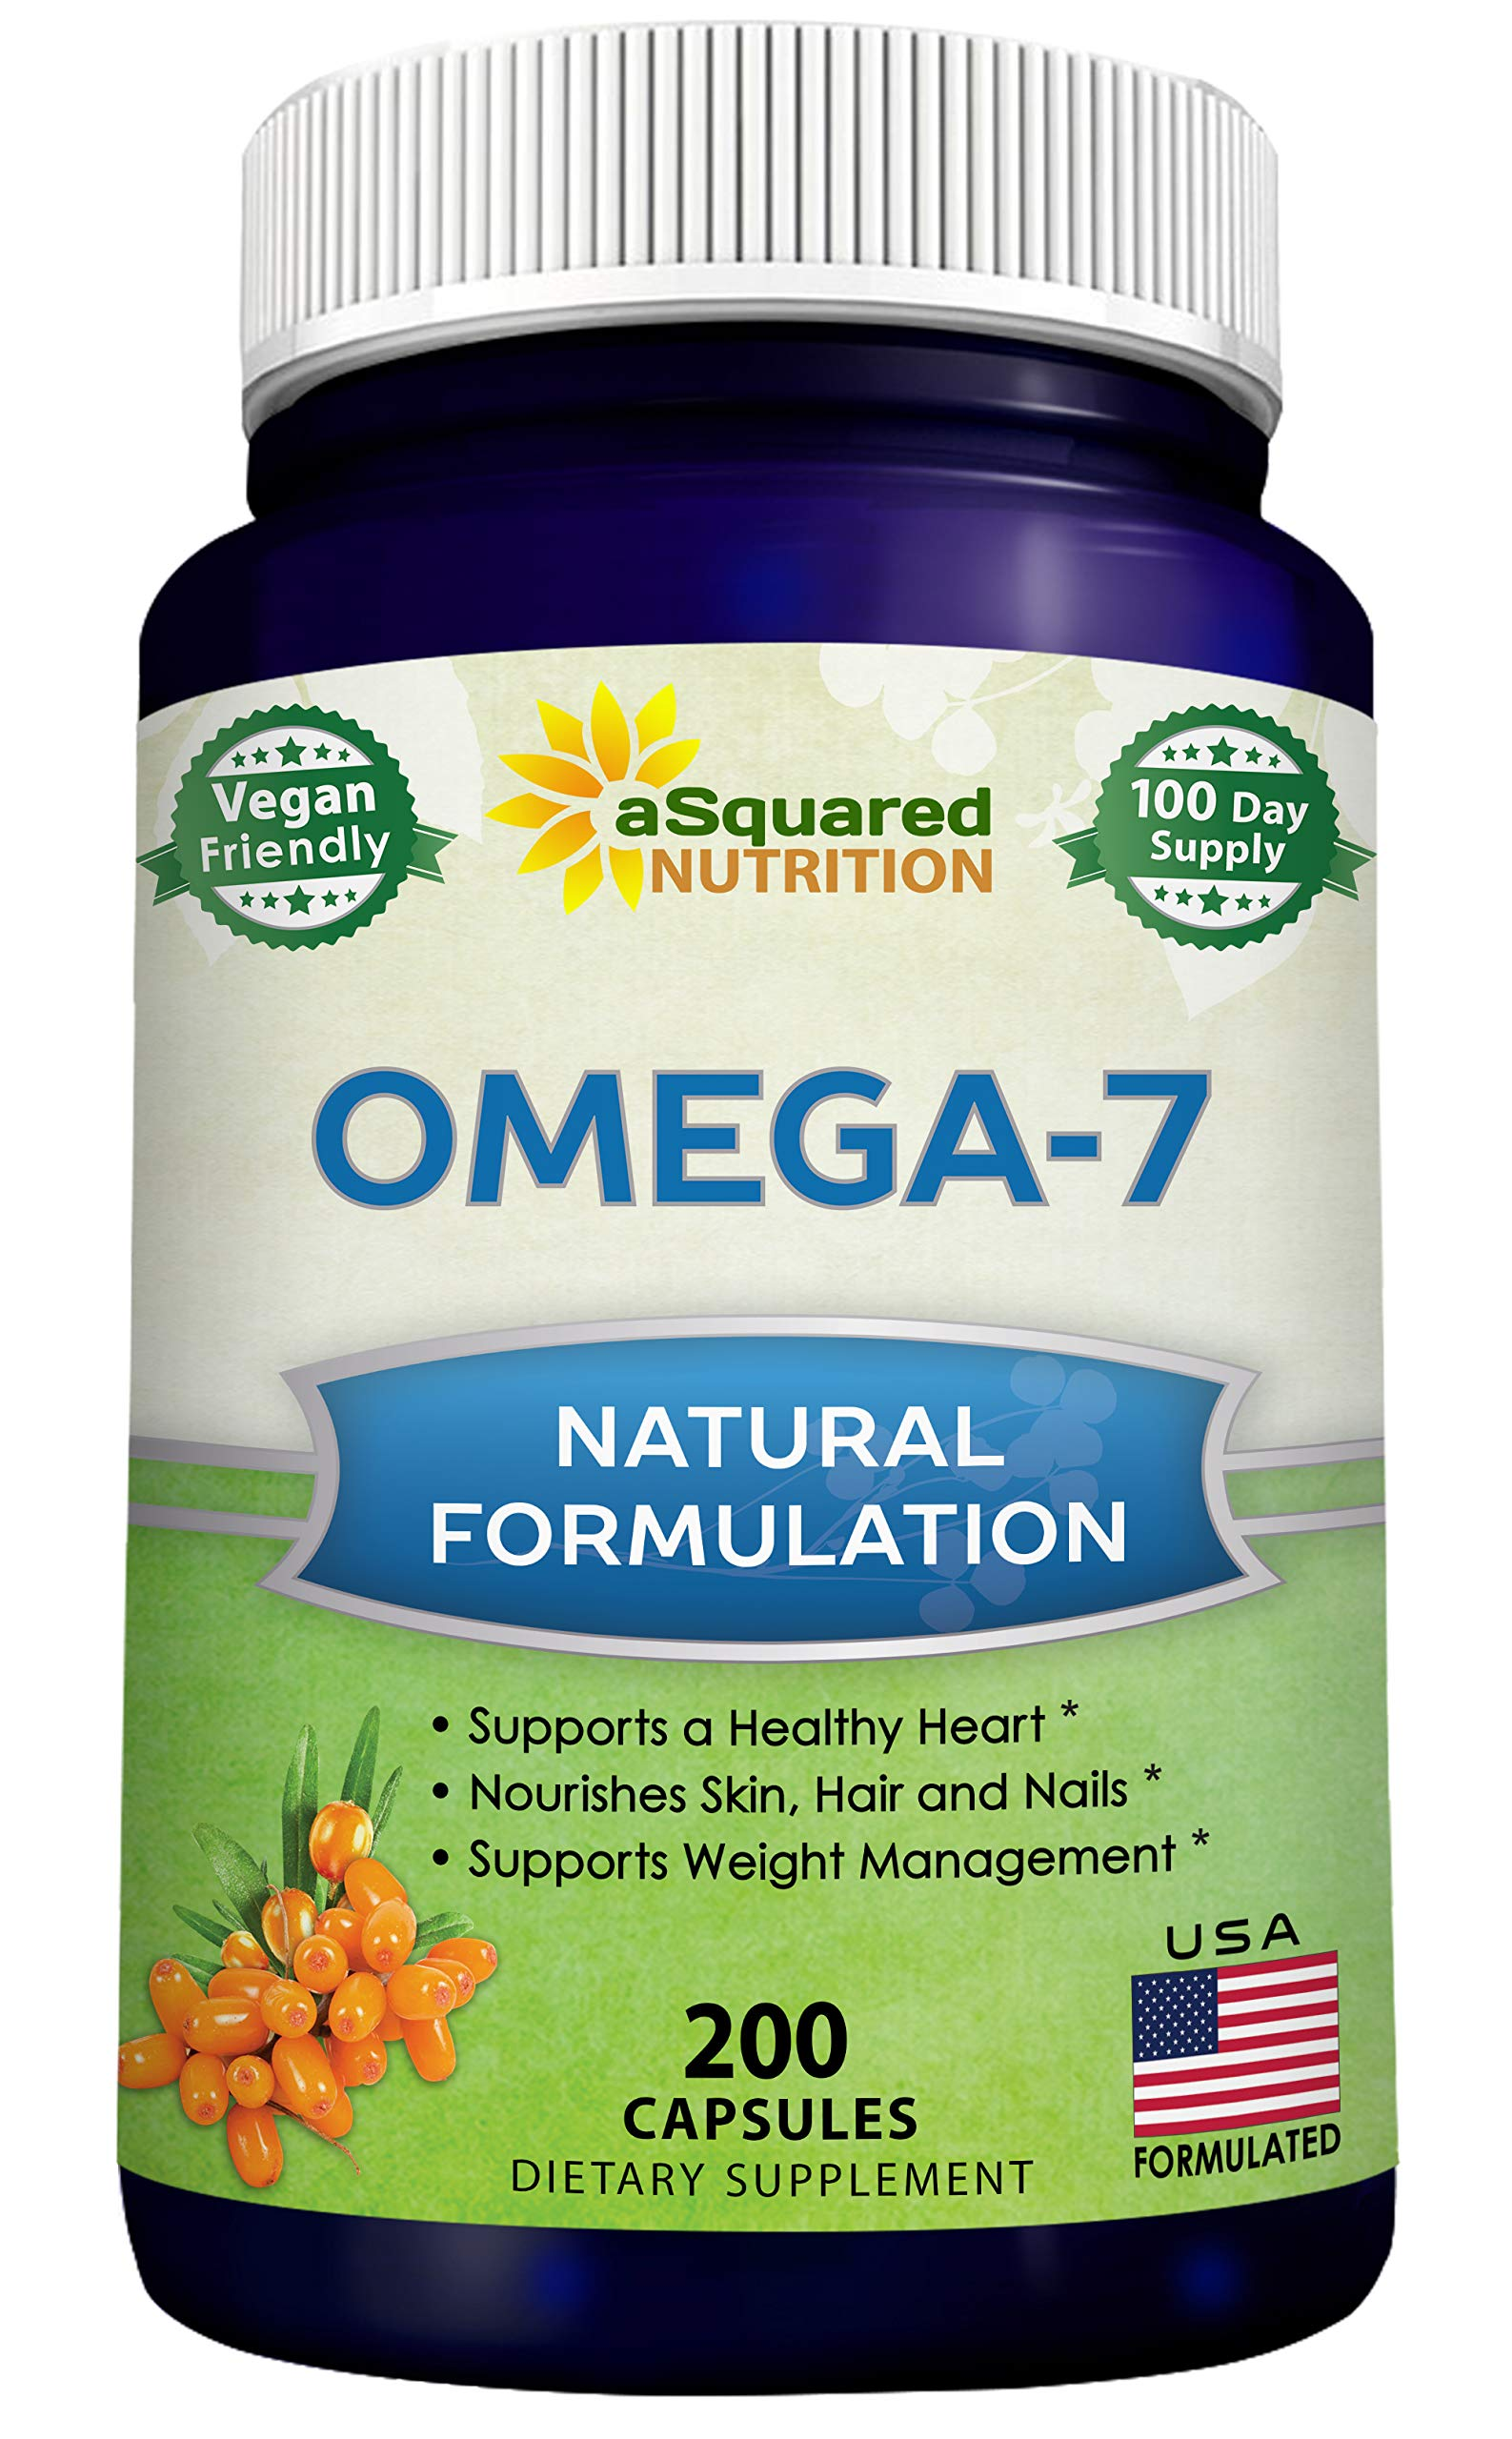 Purified Omega 7 Fatty Acids - 200 Capsules - from Natural Sea Buckthorn, XL Vitamin Supplement, No Fish Burp, Vegan Omega-7 Palmitoleic Acid, Compare to Omega 3 6 9 for Complete Weight Loss Results by aSquared Nutrition